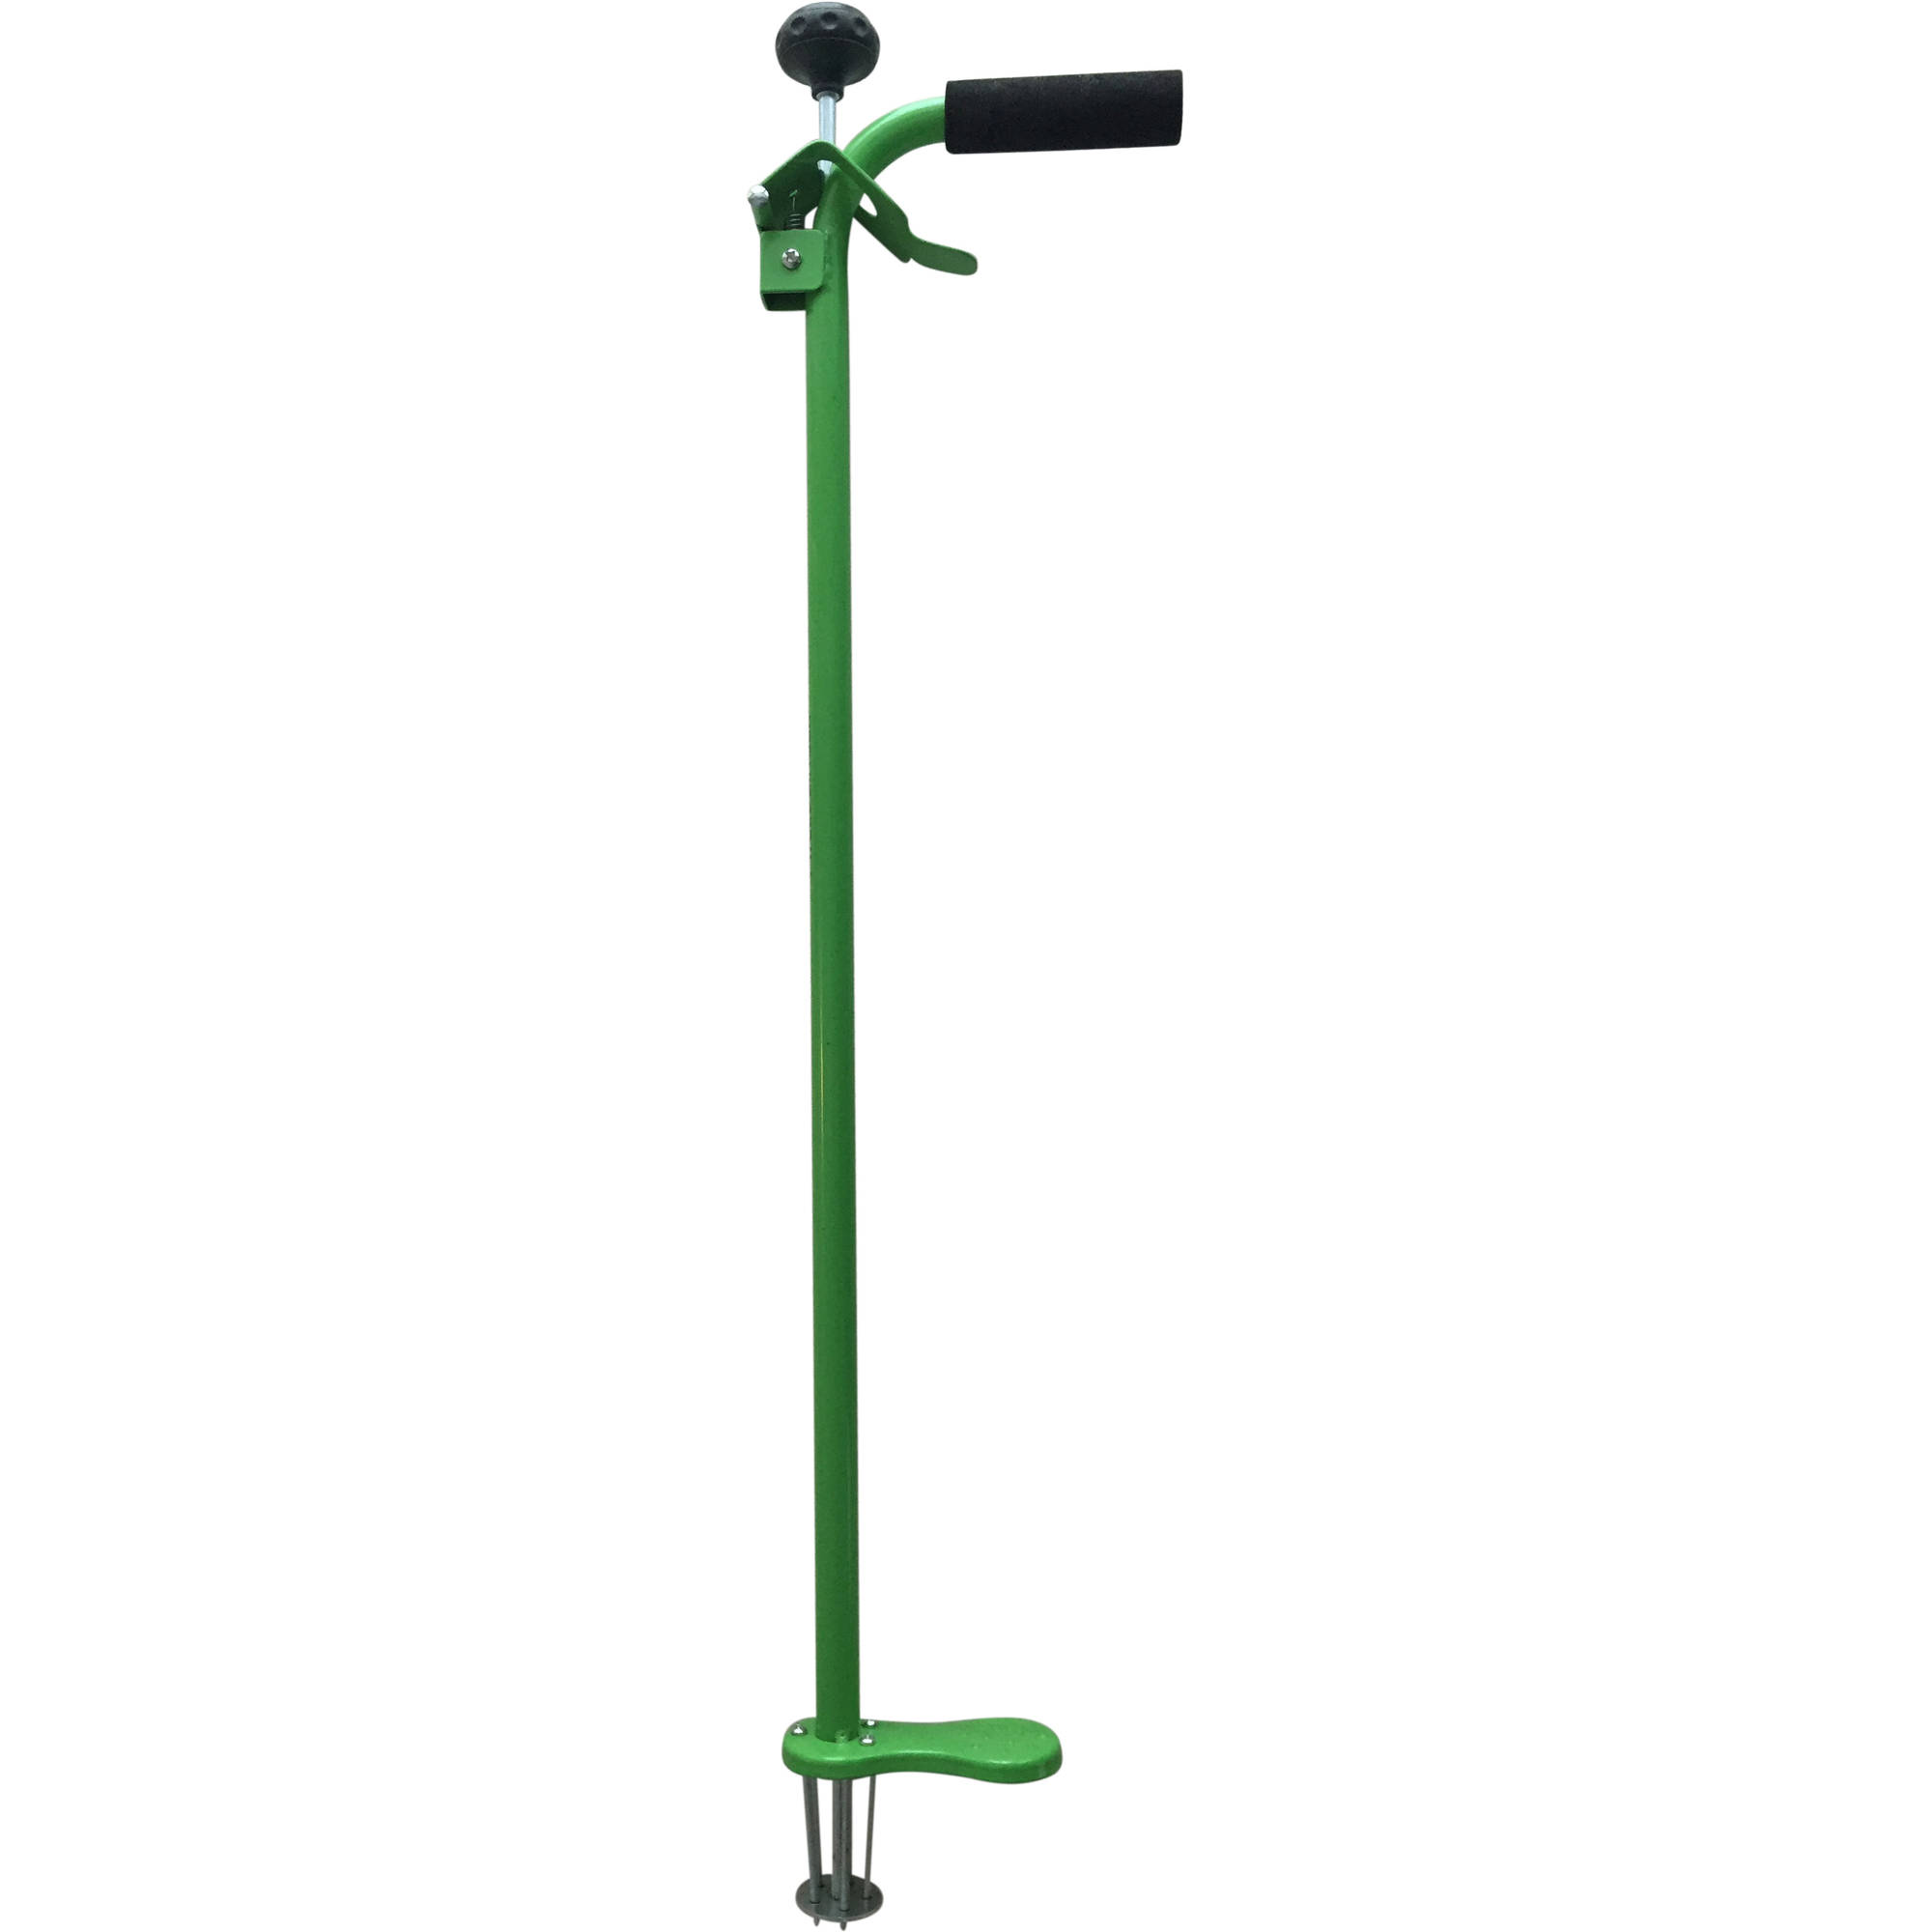 Weed Zinger Stand-Up Weeding Tool with Easy Release by Zingr Tools